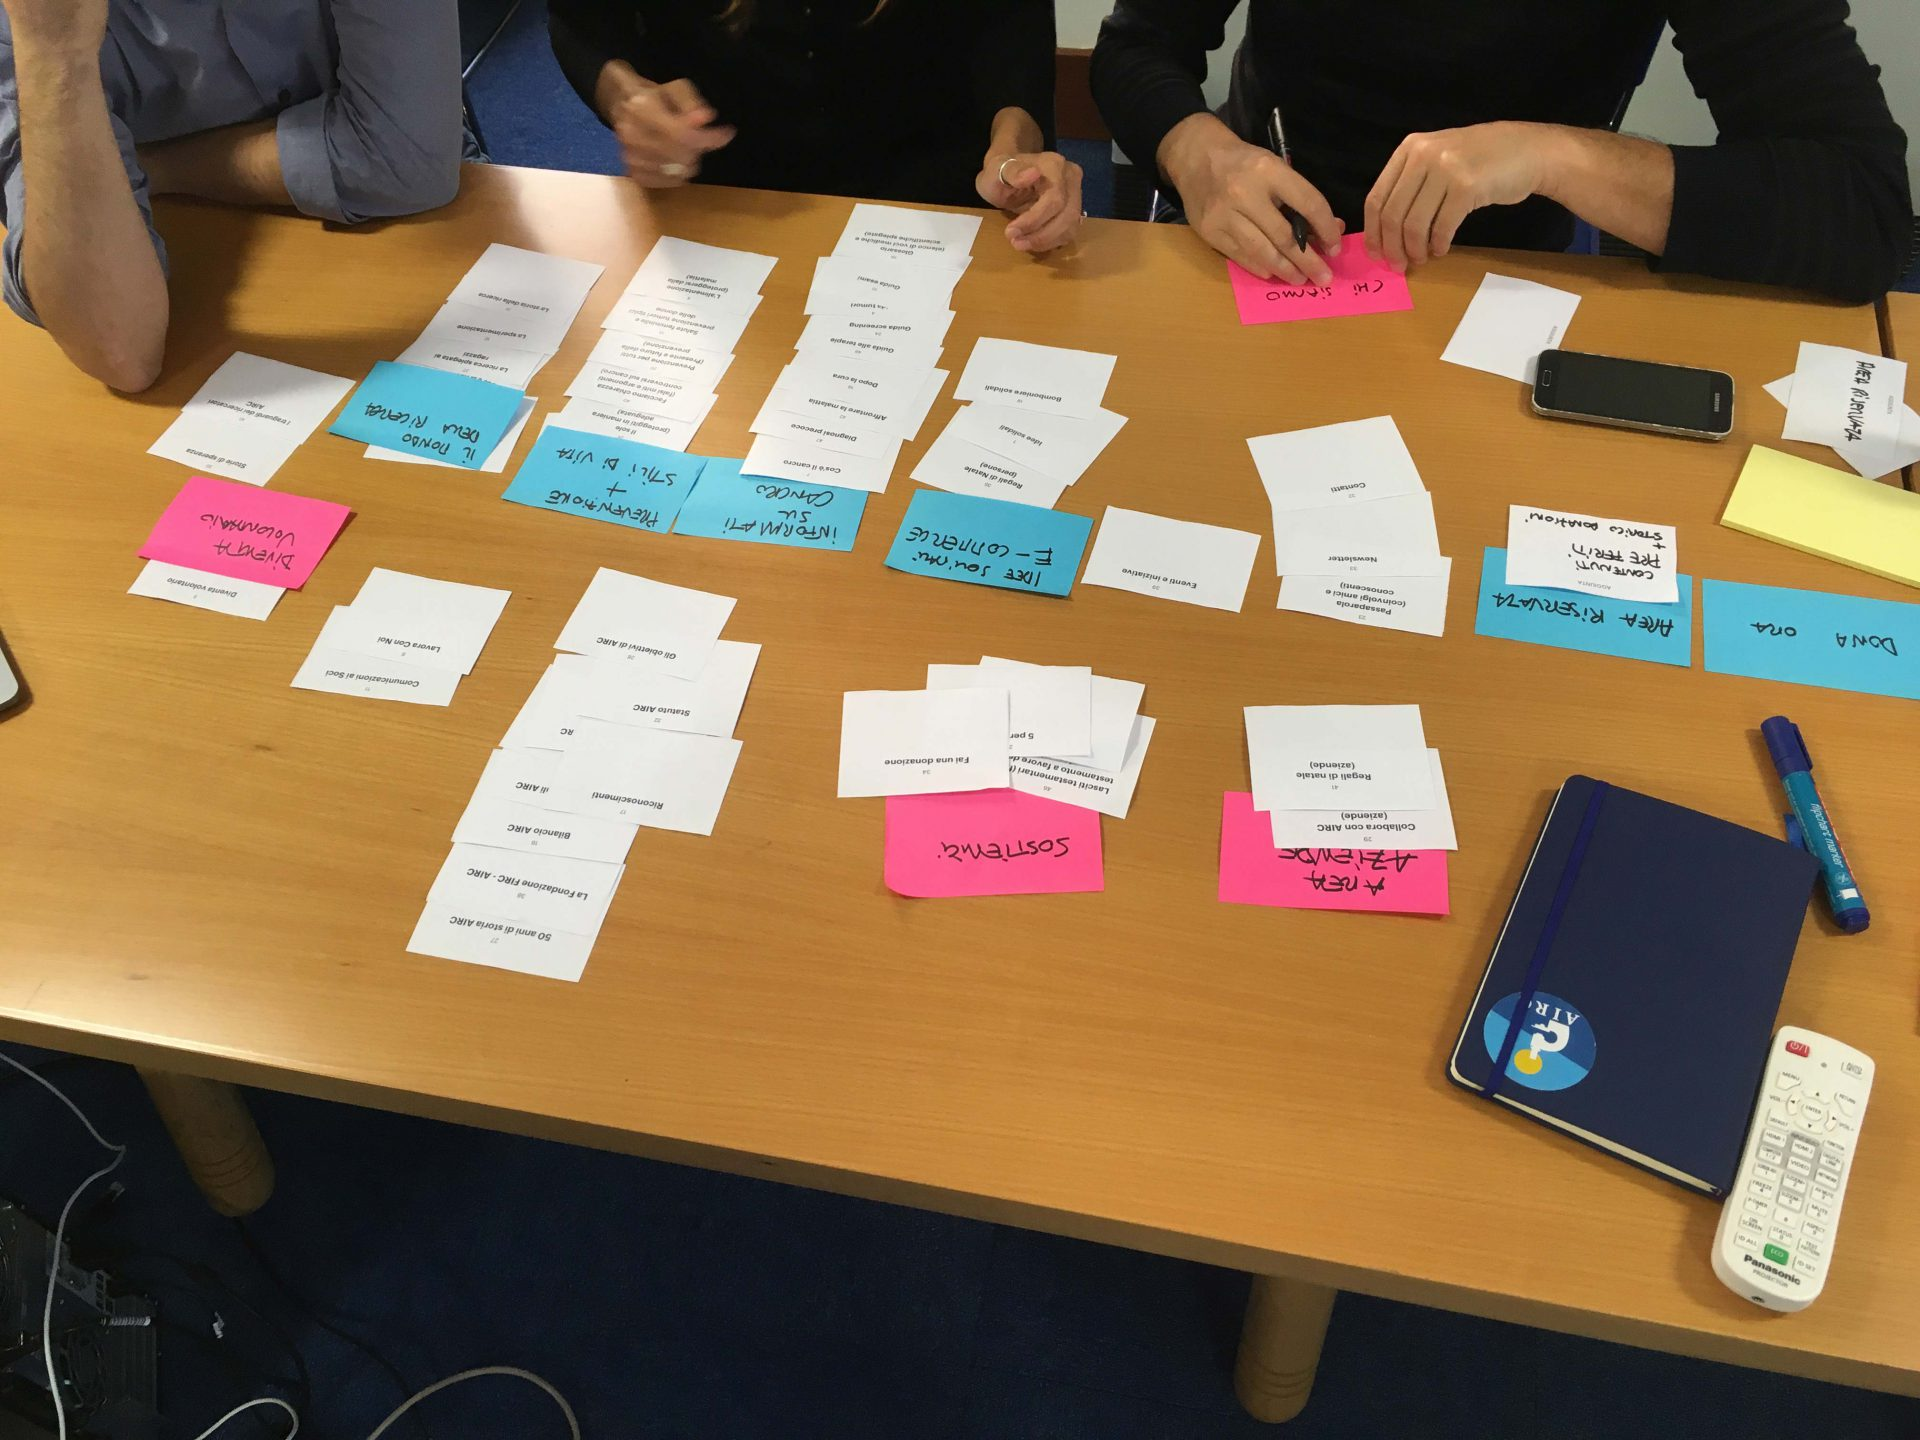 Card Sorting for designing Information Architecture